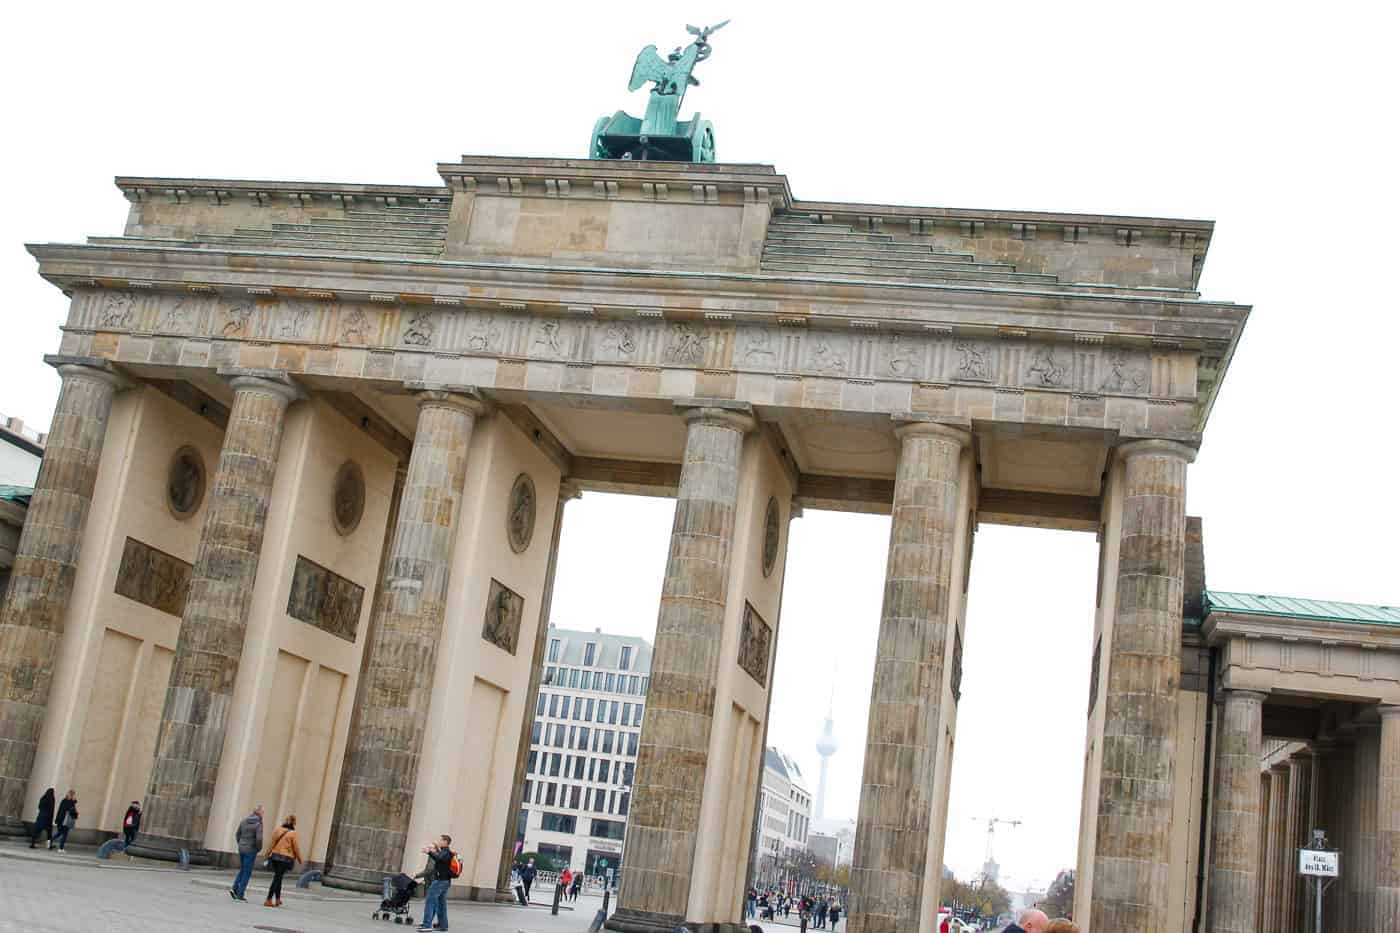 Berlin itinerary 3 days